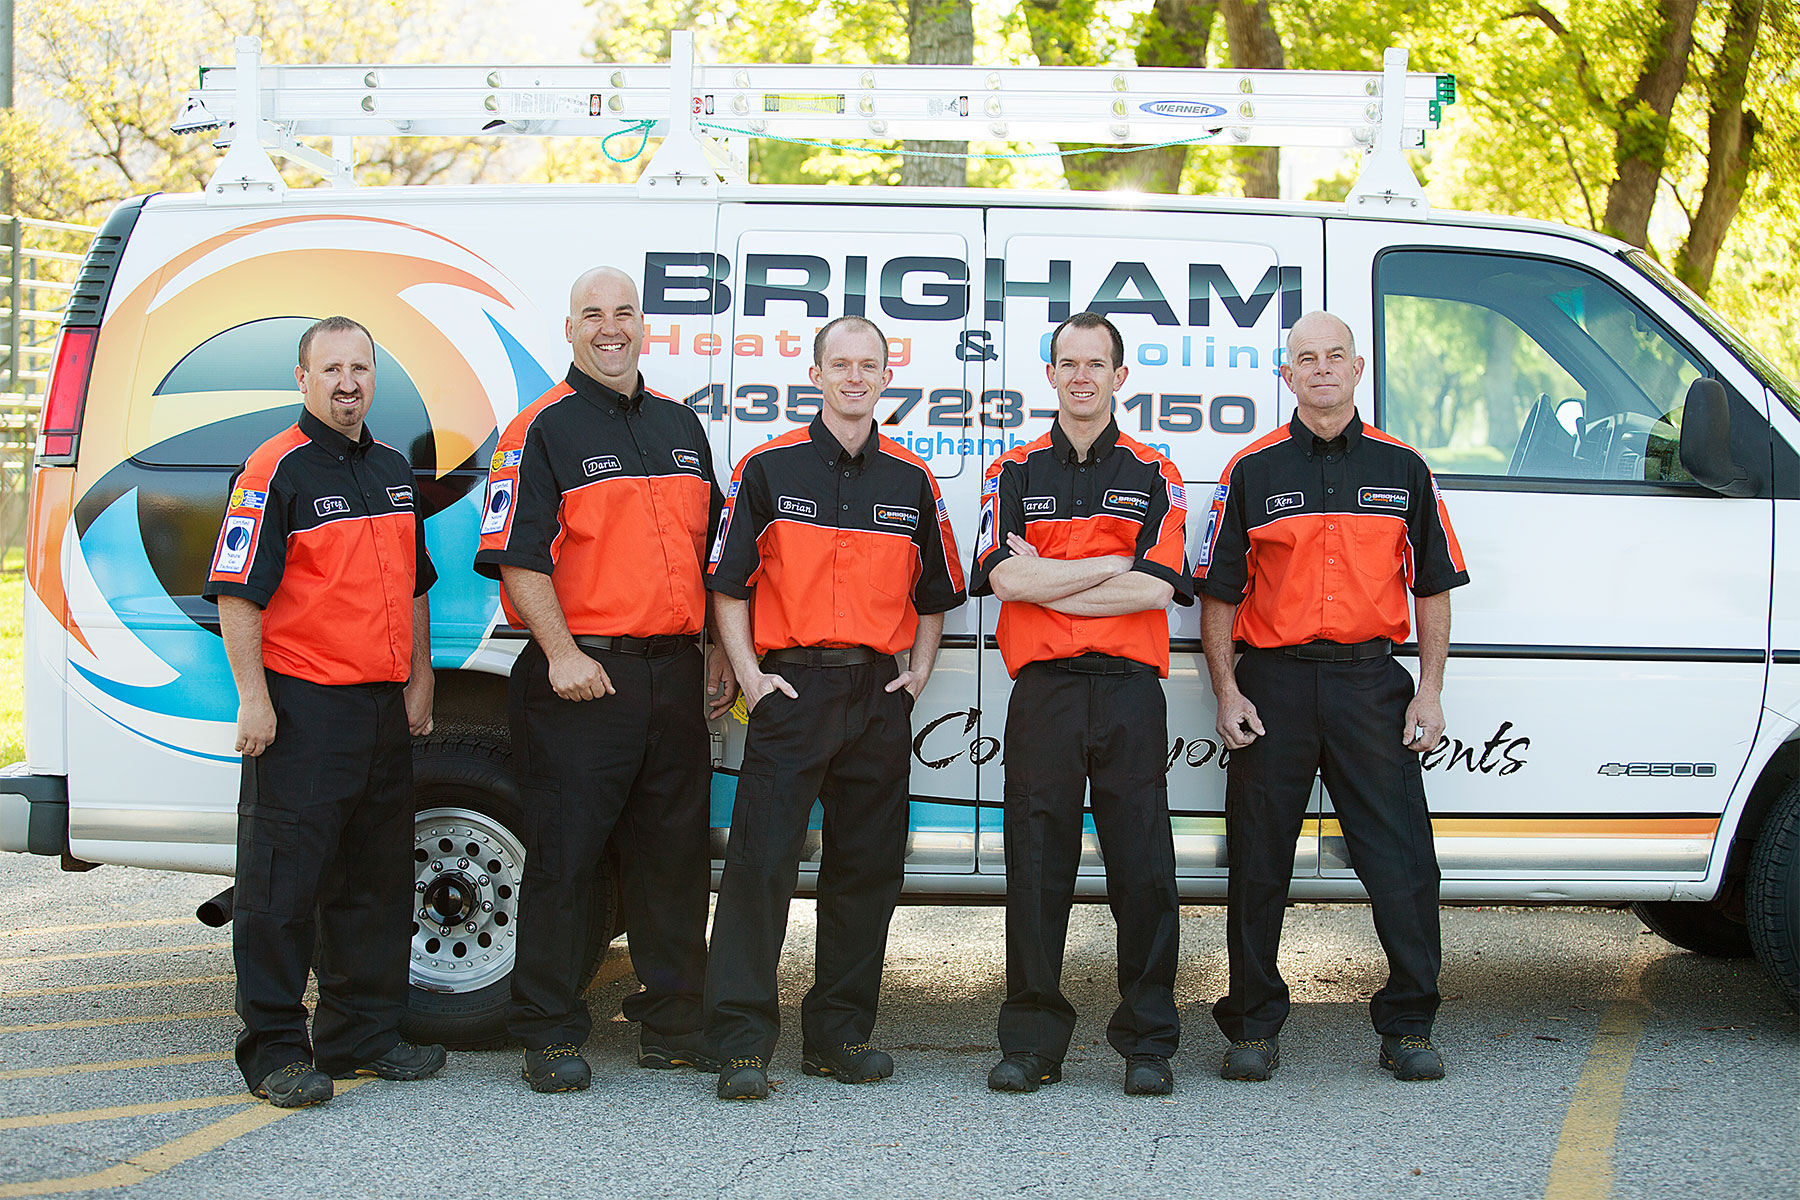 brigham-heating-and-cooling-techs-by-van